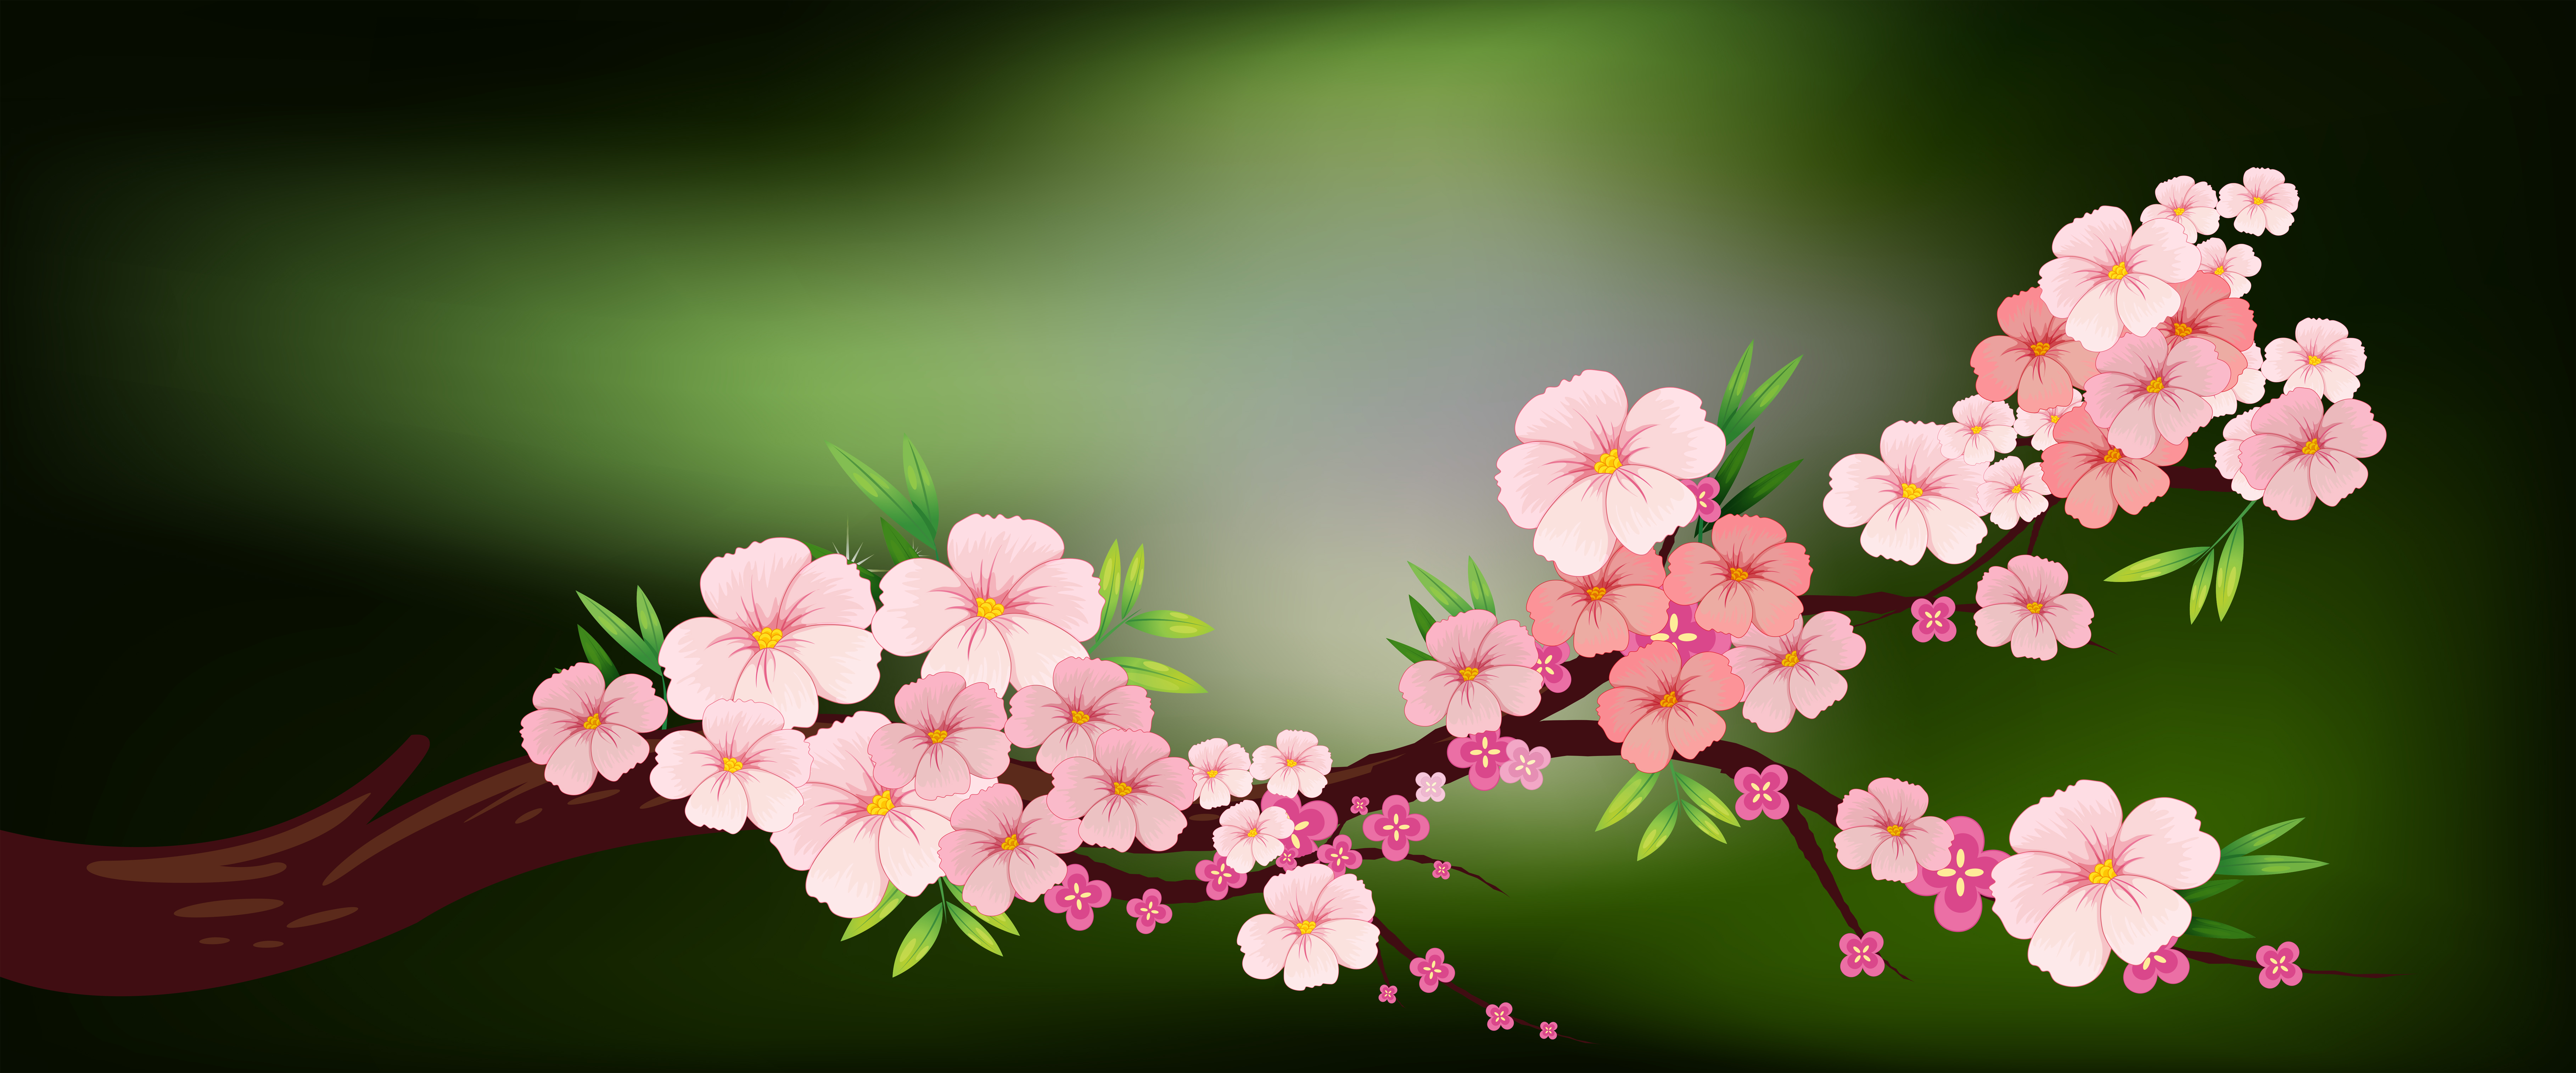 Cherry Blossom On The Branch Download Free Vectors